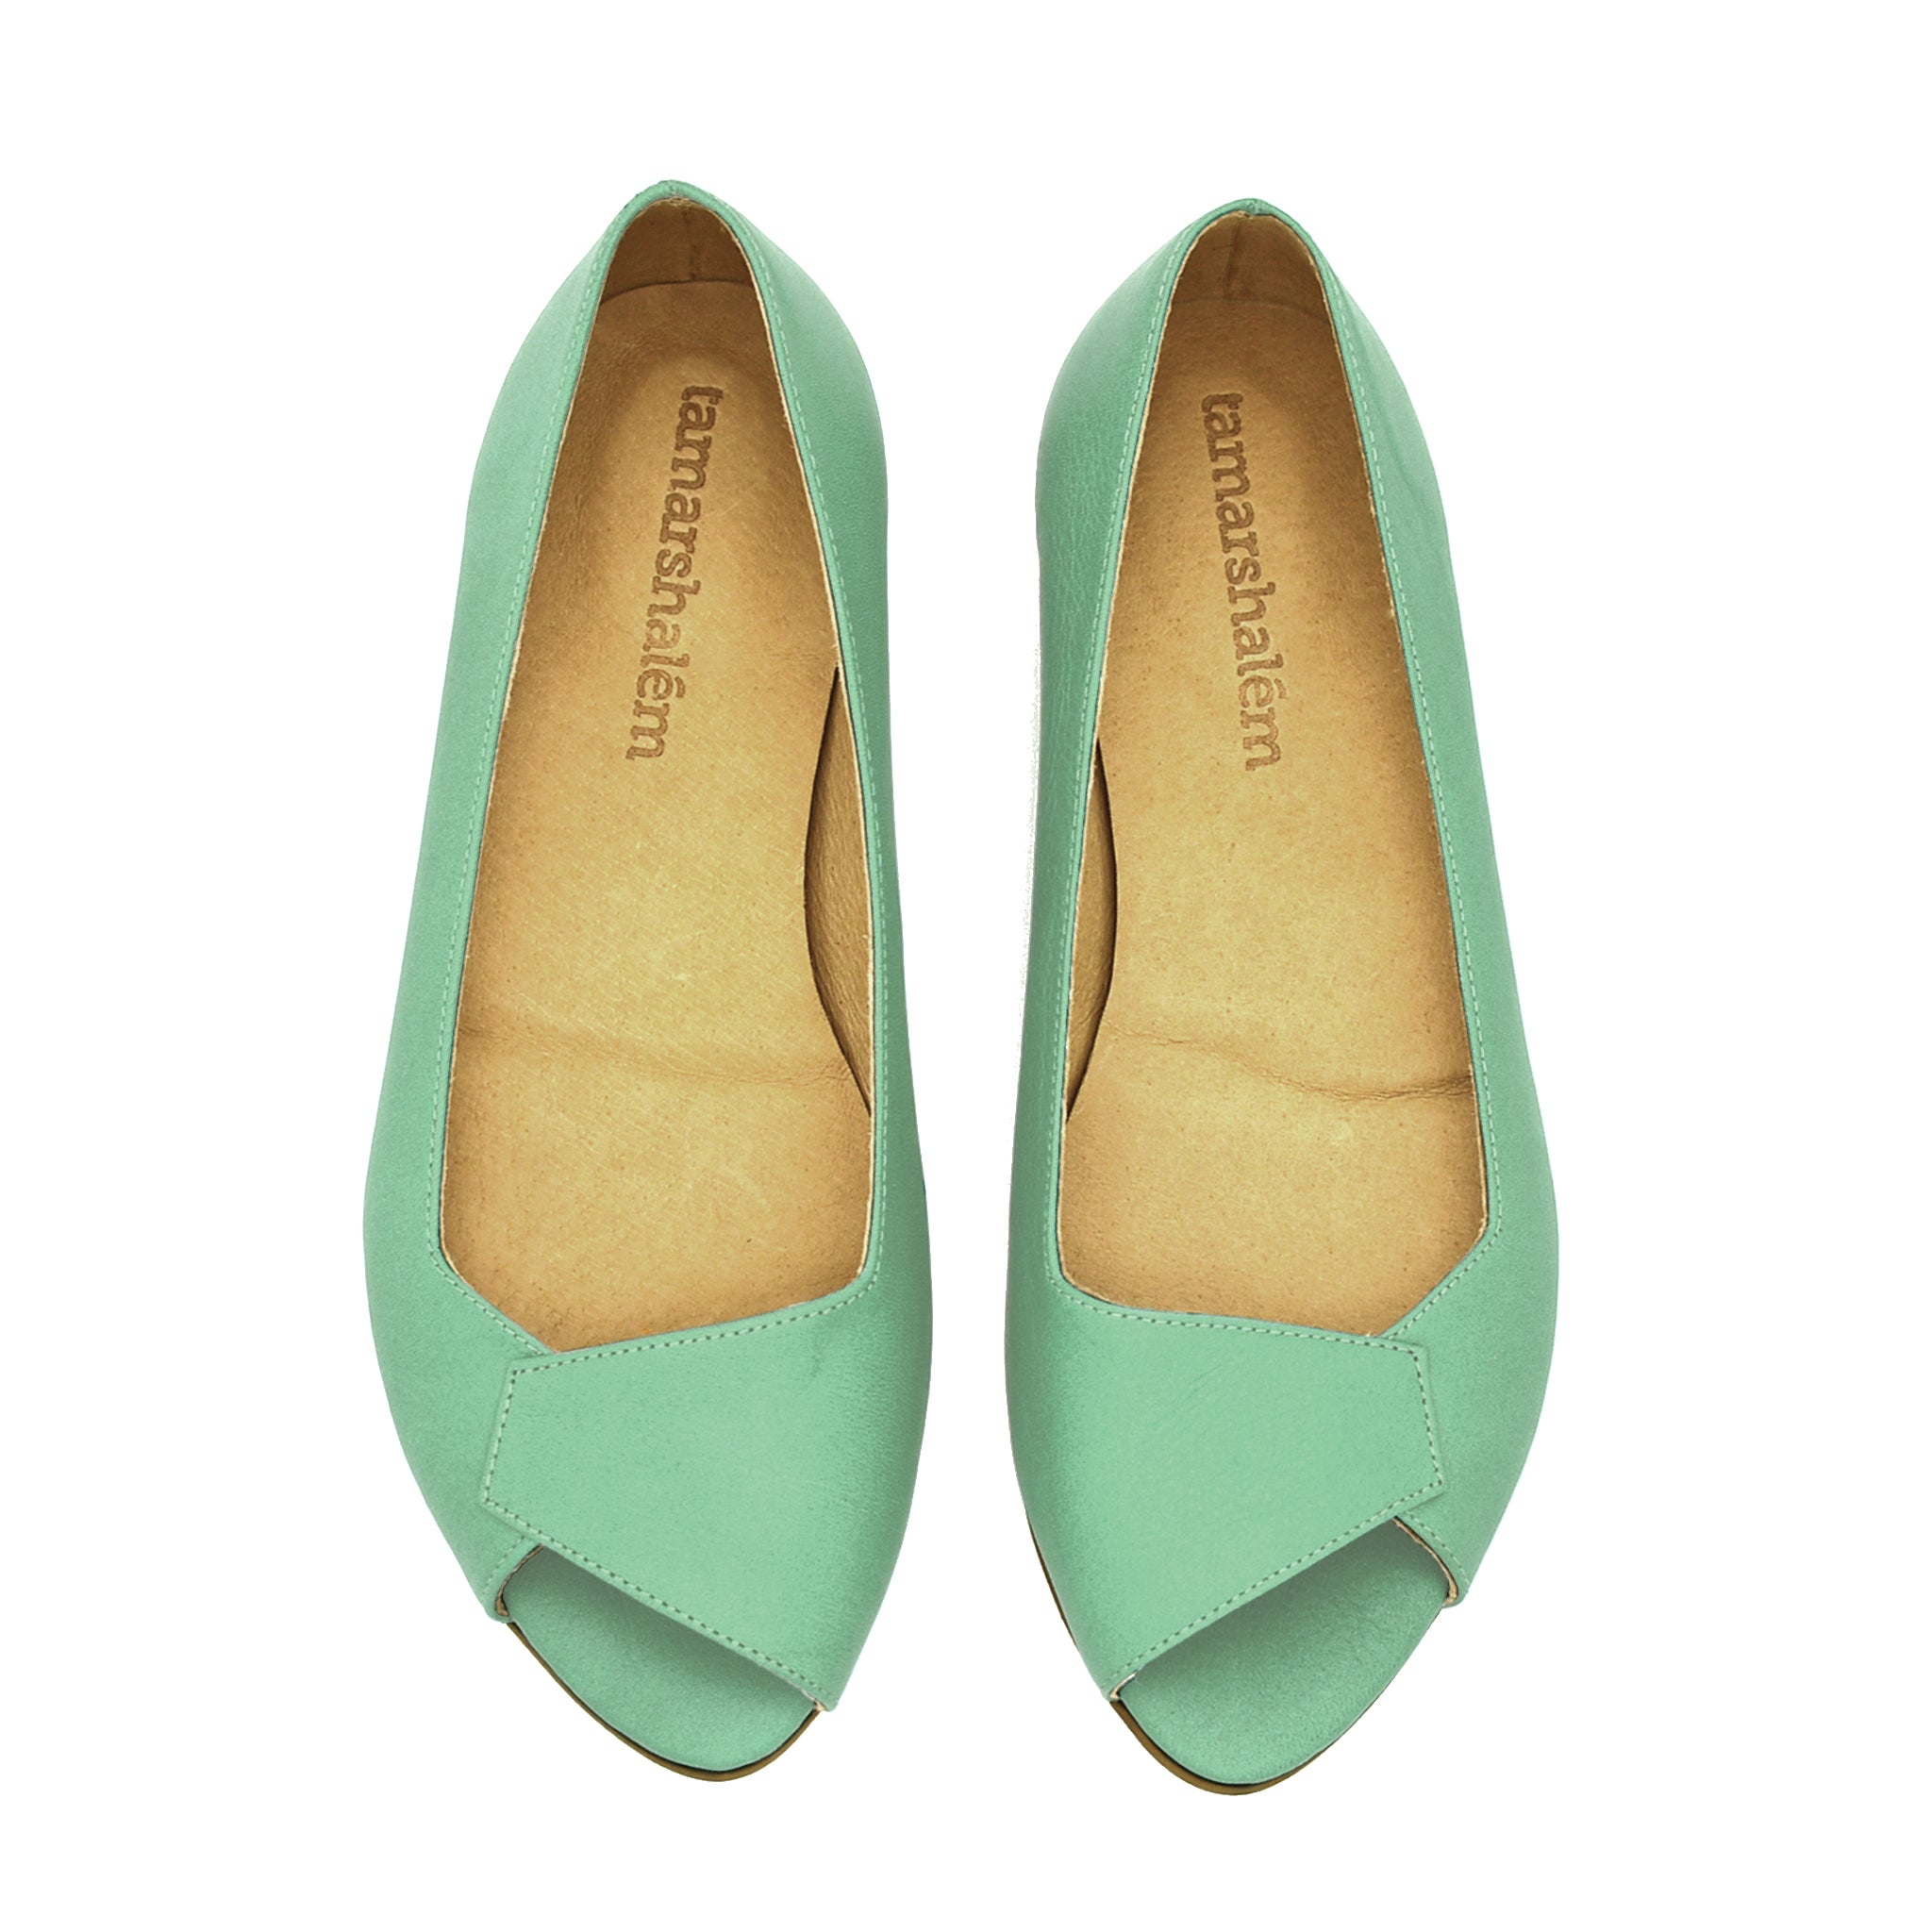 Mia peep toe flats in mint green